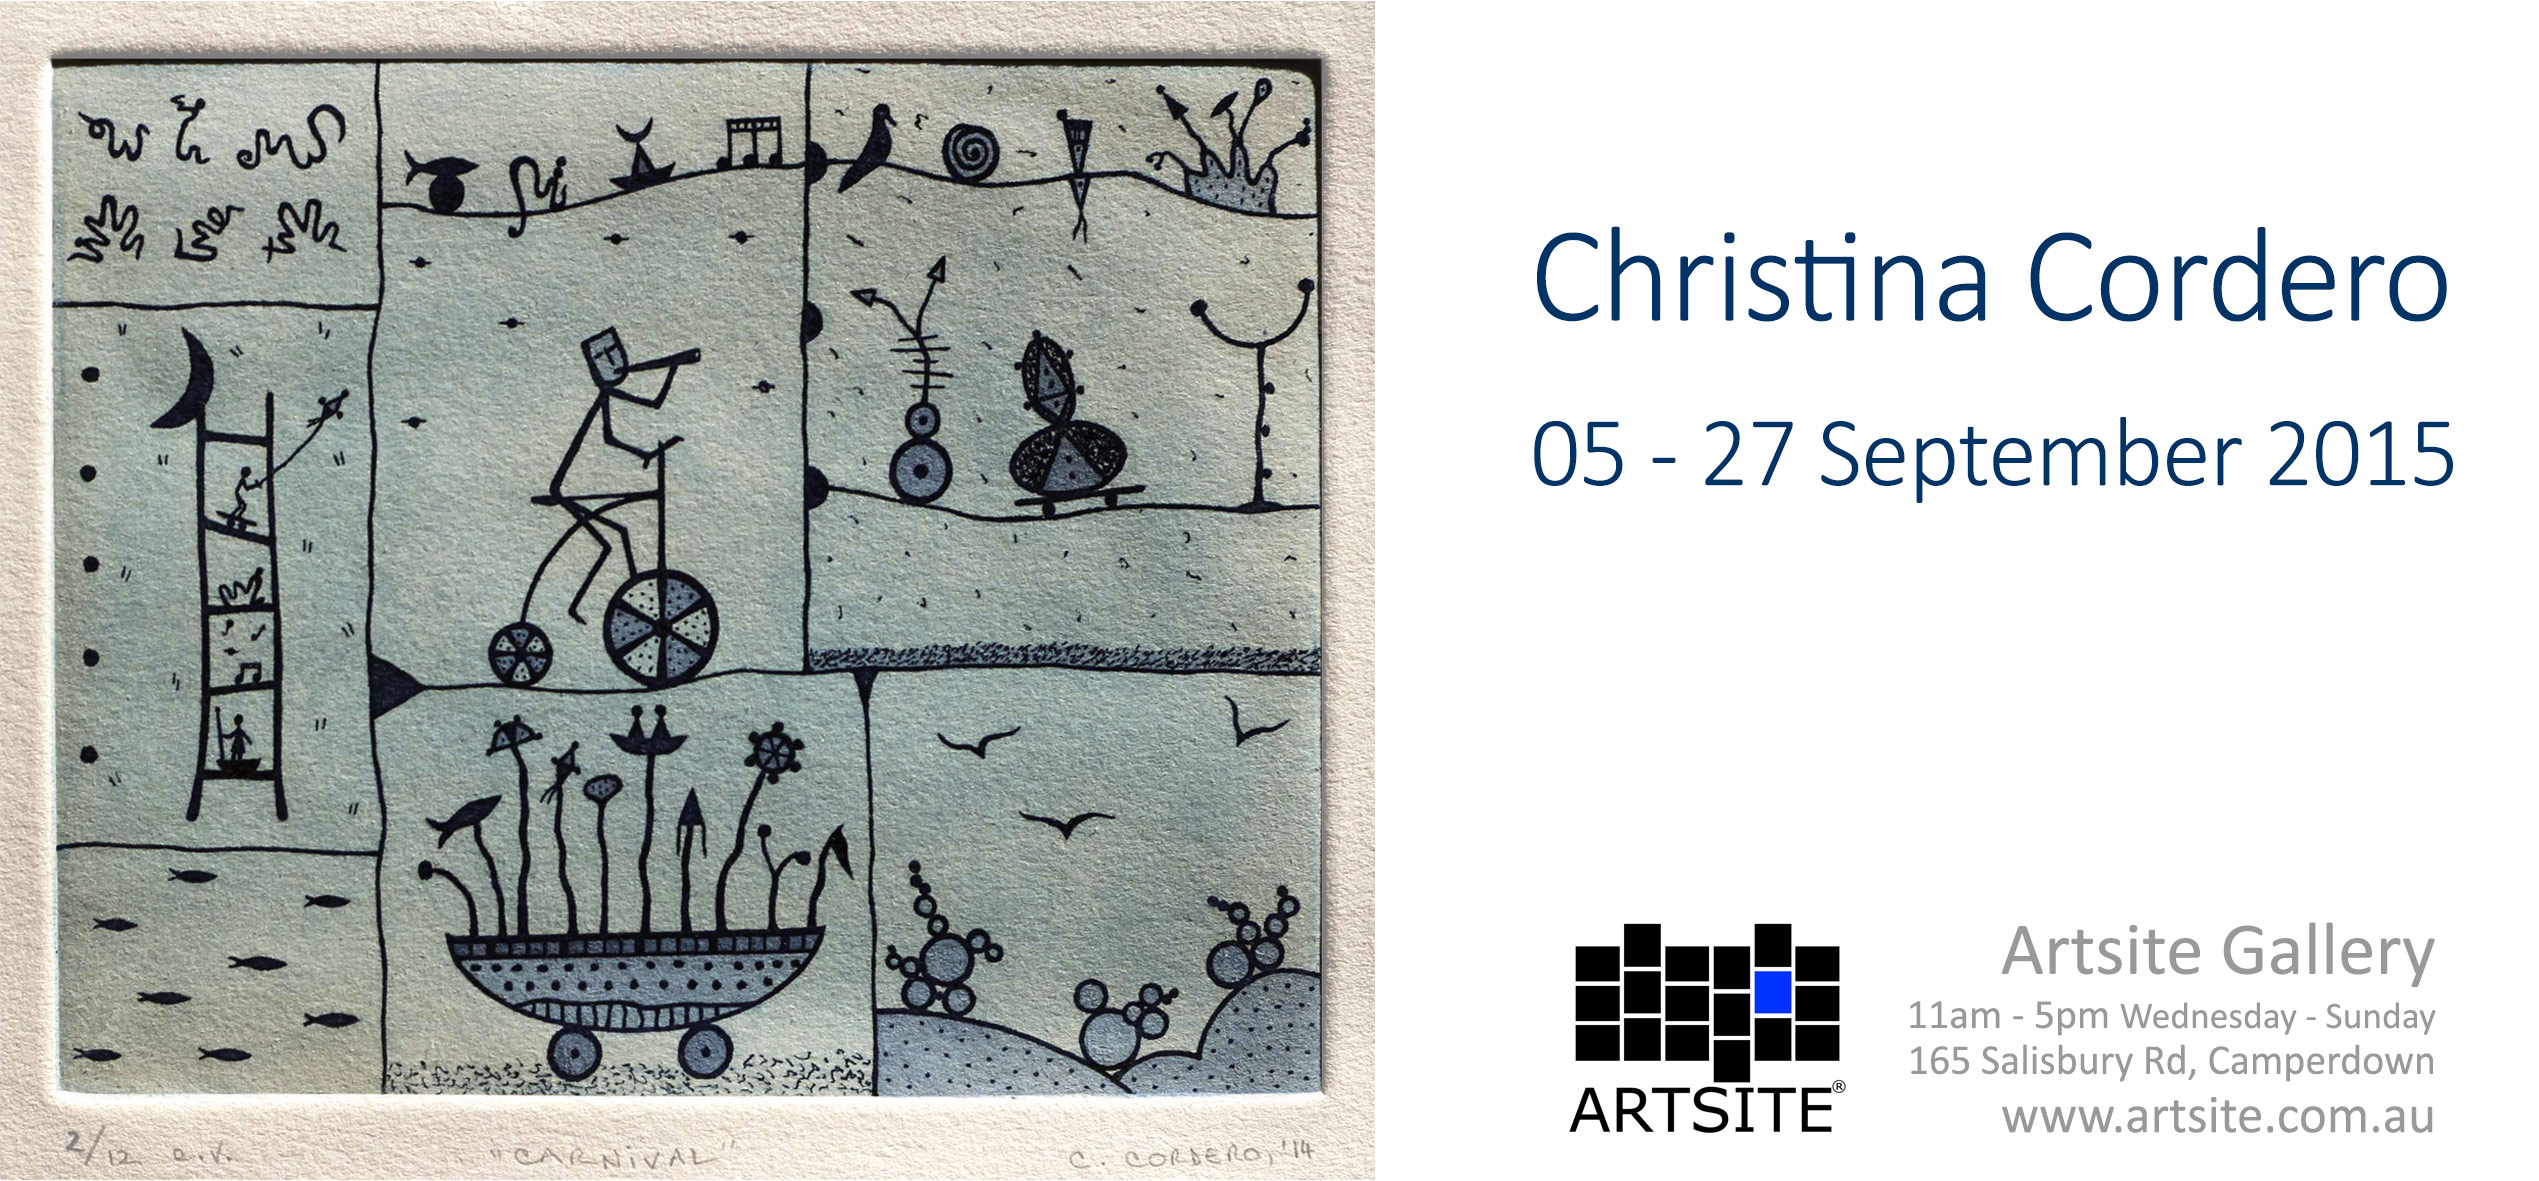 View Exhibition at Artsite Gallery. 05- 27 September 2015: Christina Cordero Etchings